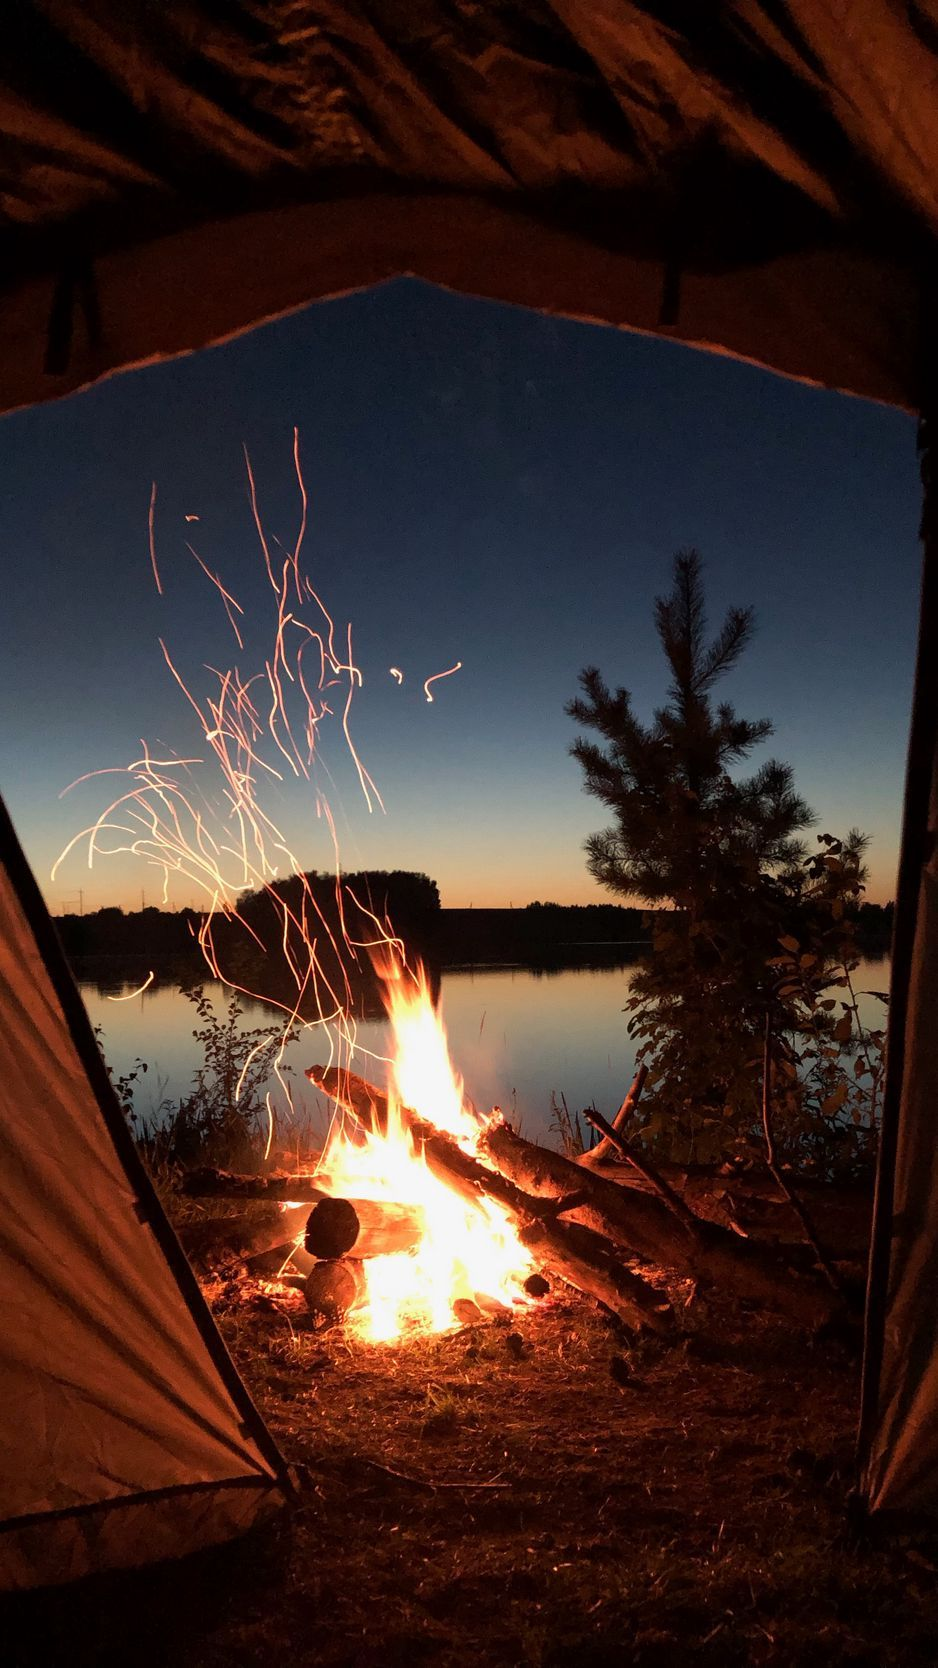 Camping iPhone Wallpapers   Top Camping iPhone Backgrounds 938x1668